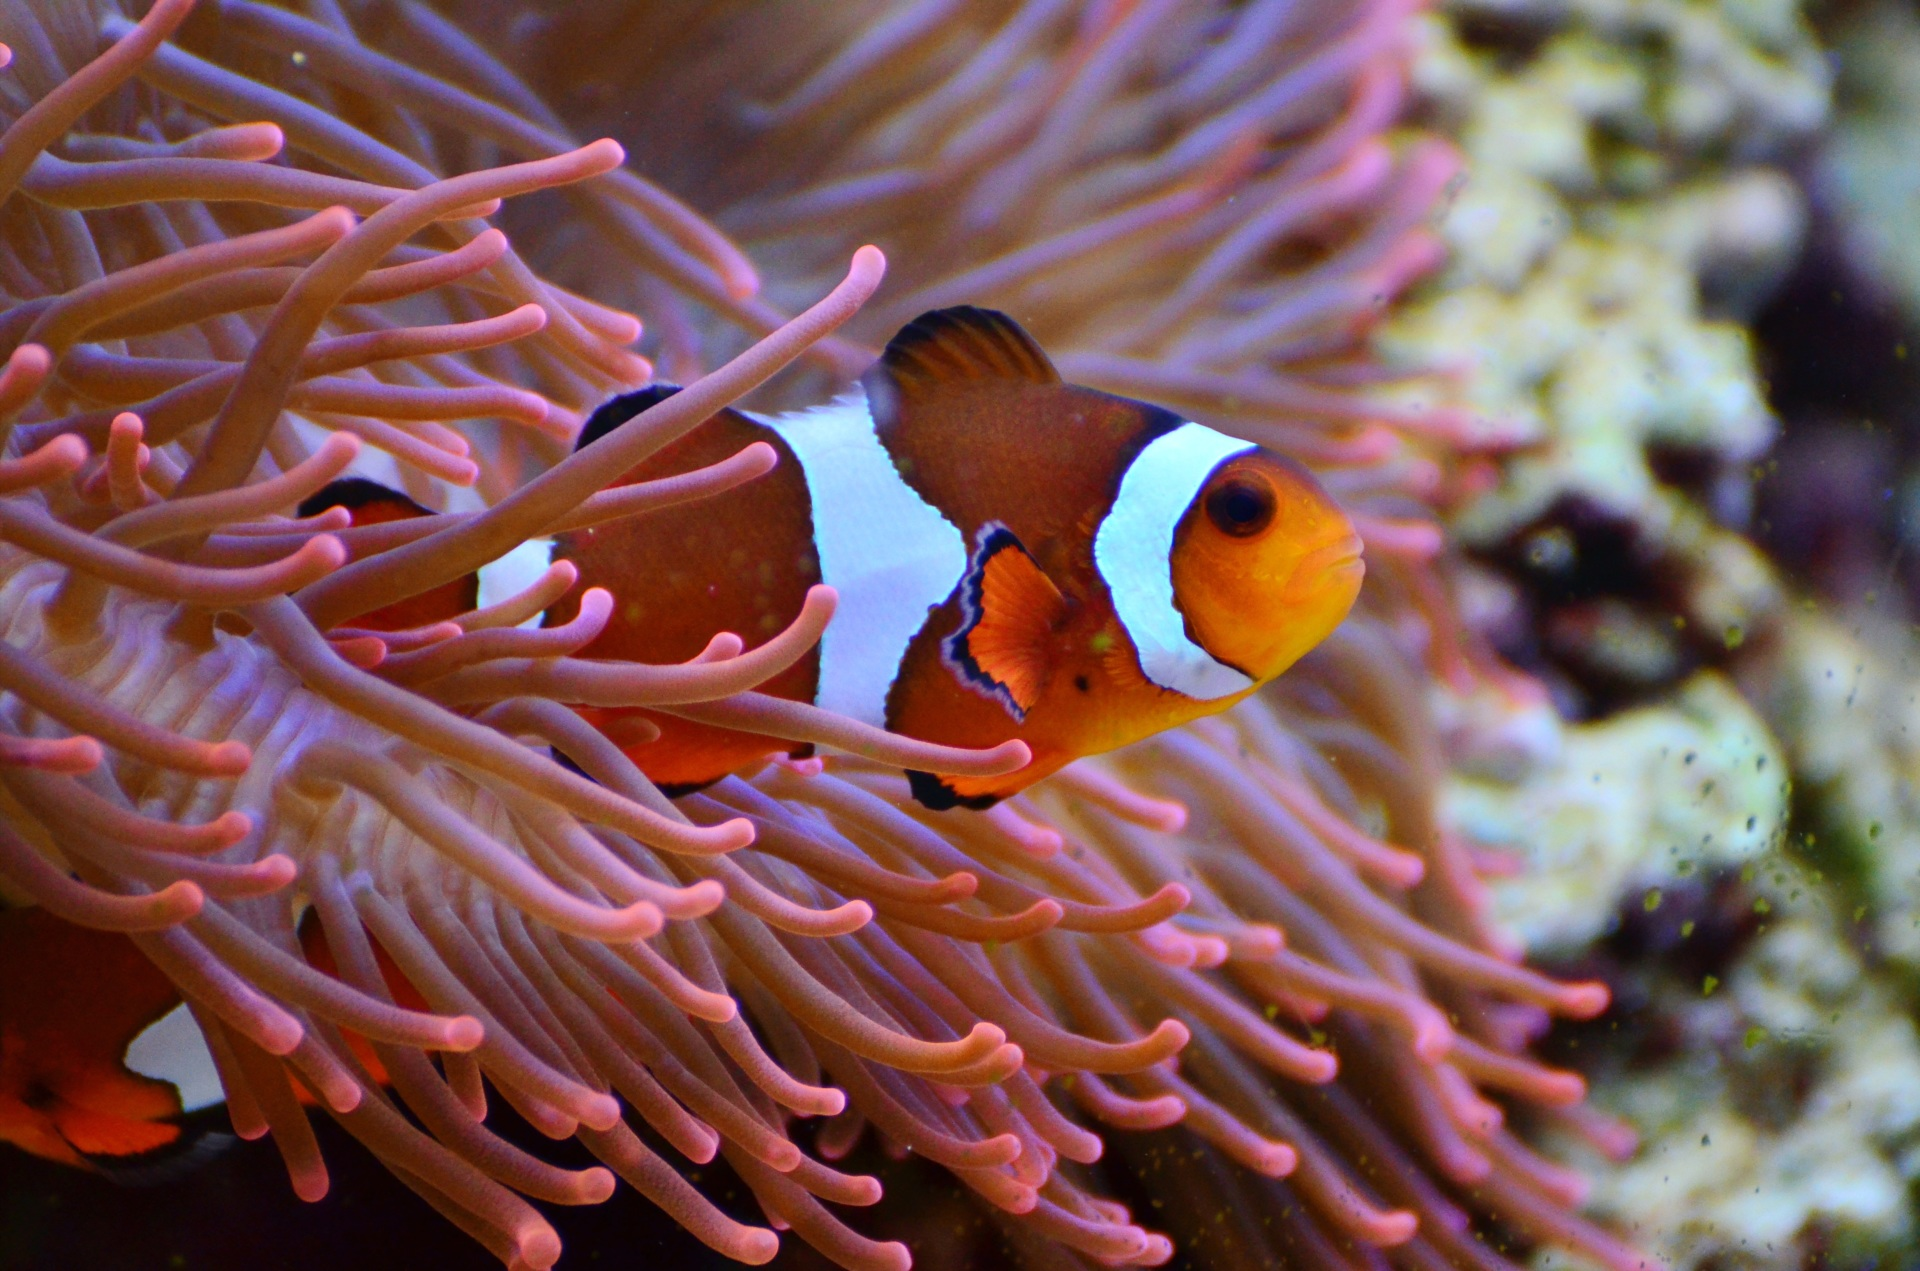 All clownfish are born male! Later in their life, if there aren't enough females around, they may transform into a female. This way there will always be enough females around to be mummy clownfish!